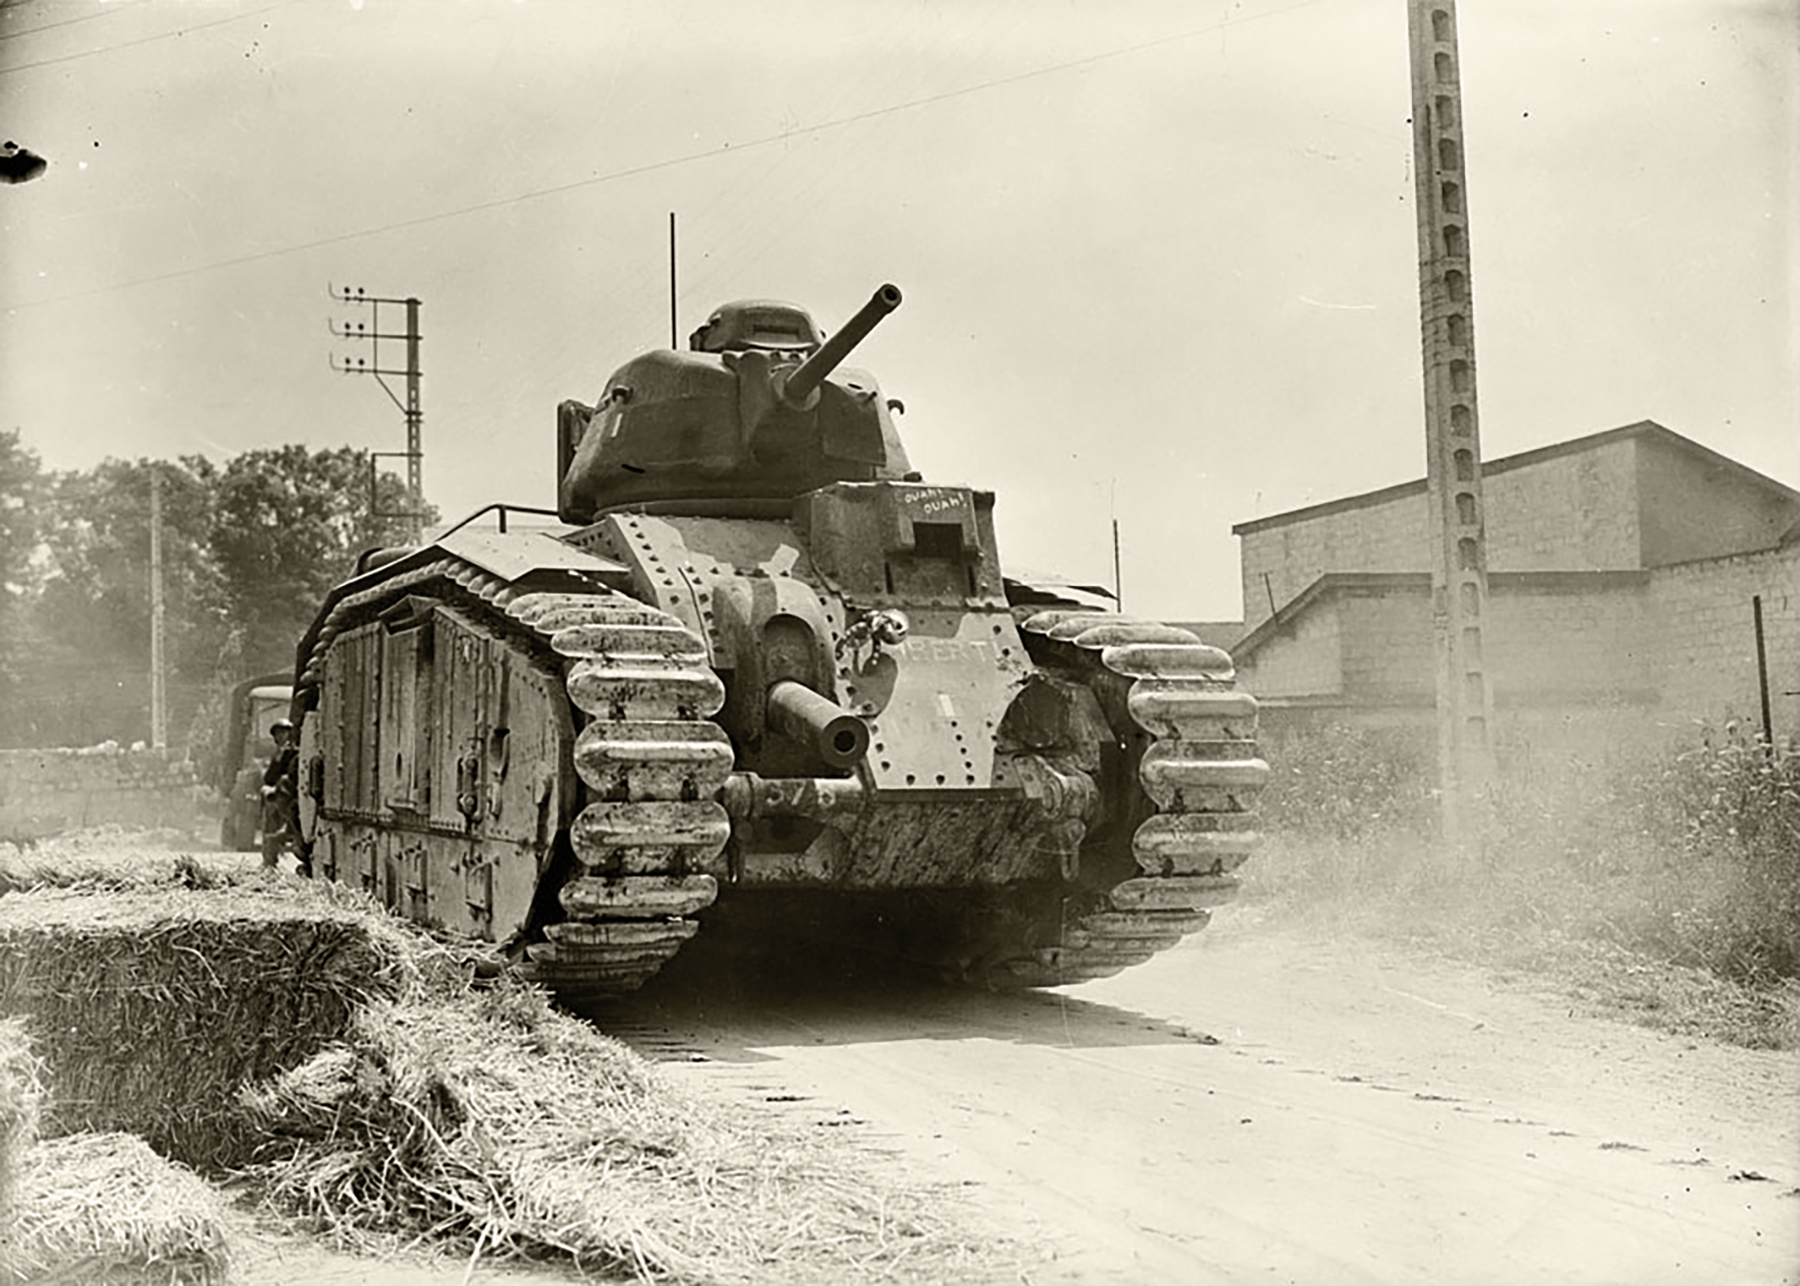 French Army Renault Char B1 named Mbreti means king during the battle of France 1940 ebay 01